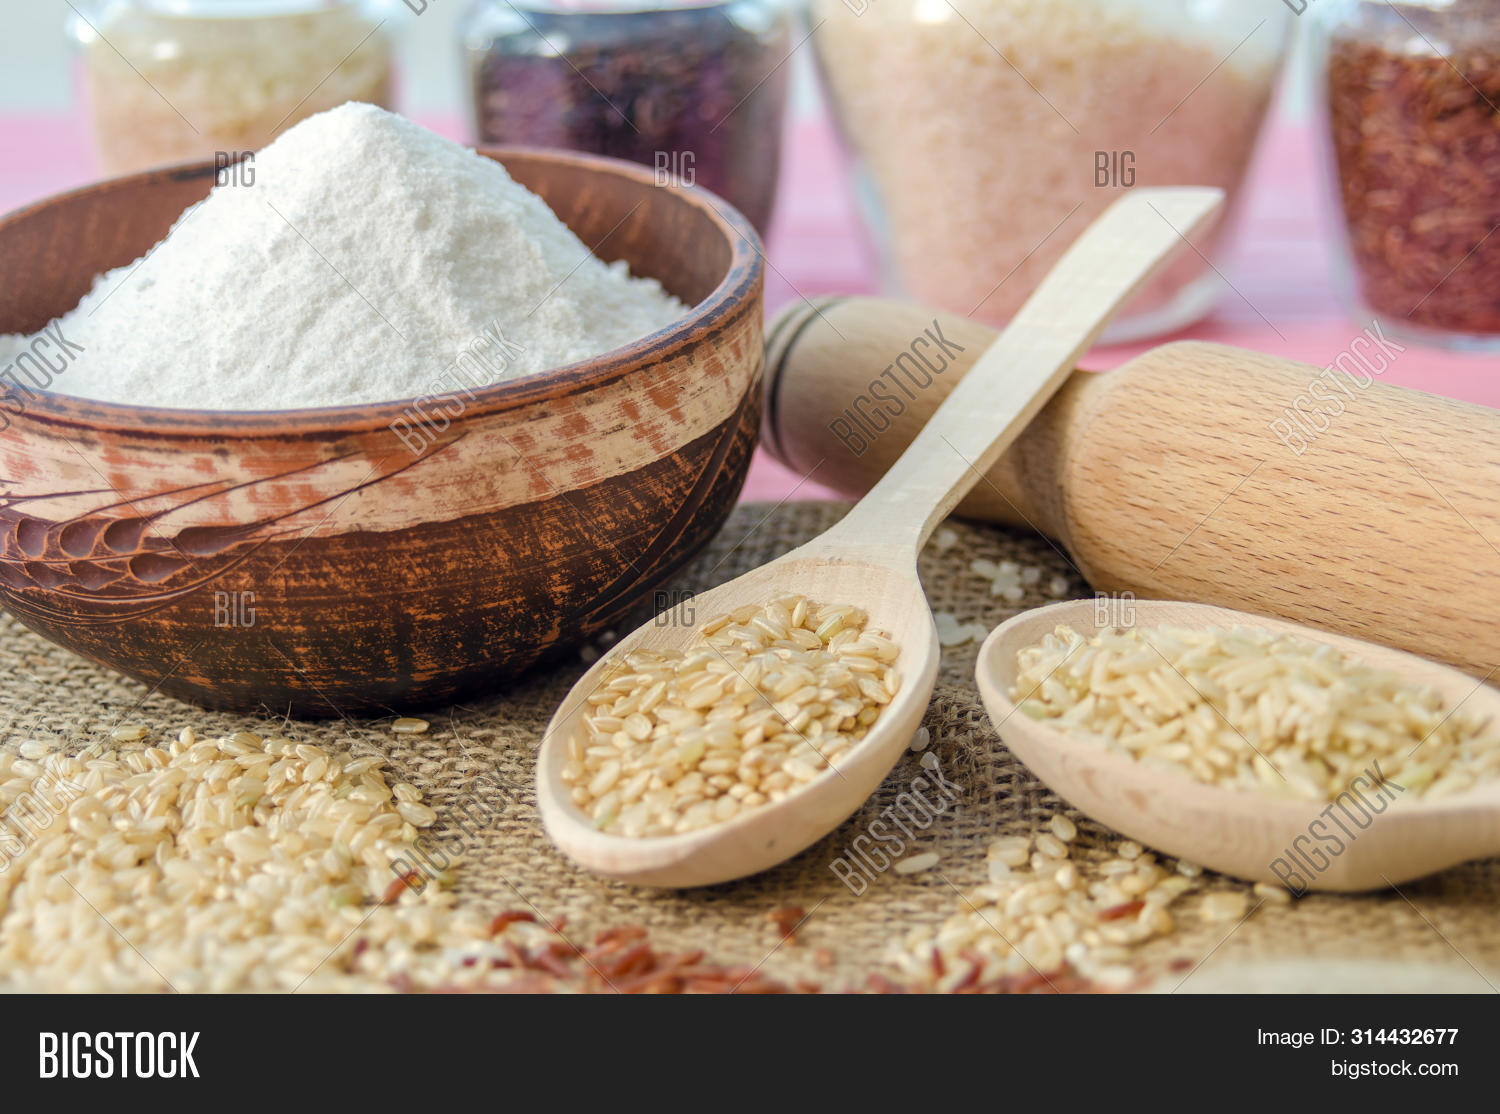 asian,background,basmati,black,bowl,bran,brown,cereal,cooking,cuisine,culture,delicious,diet,dietary,dish,dry,food,forbidden,grain,group,harvest,harvested,health,healthy,heap,indian,ingredient,italian,jasmine,long,meal,natural,nero,nutrition,organic,pile,raw,red,rice,rough,seed,thai,uncooked,unpolished,vegan,venere,white,whole